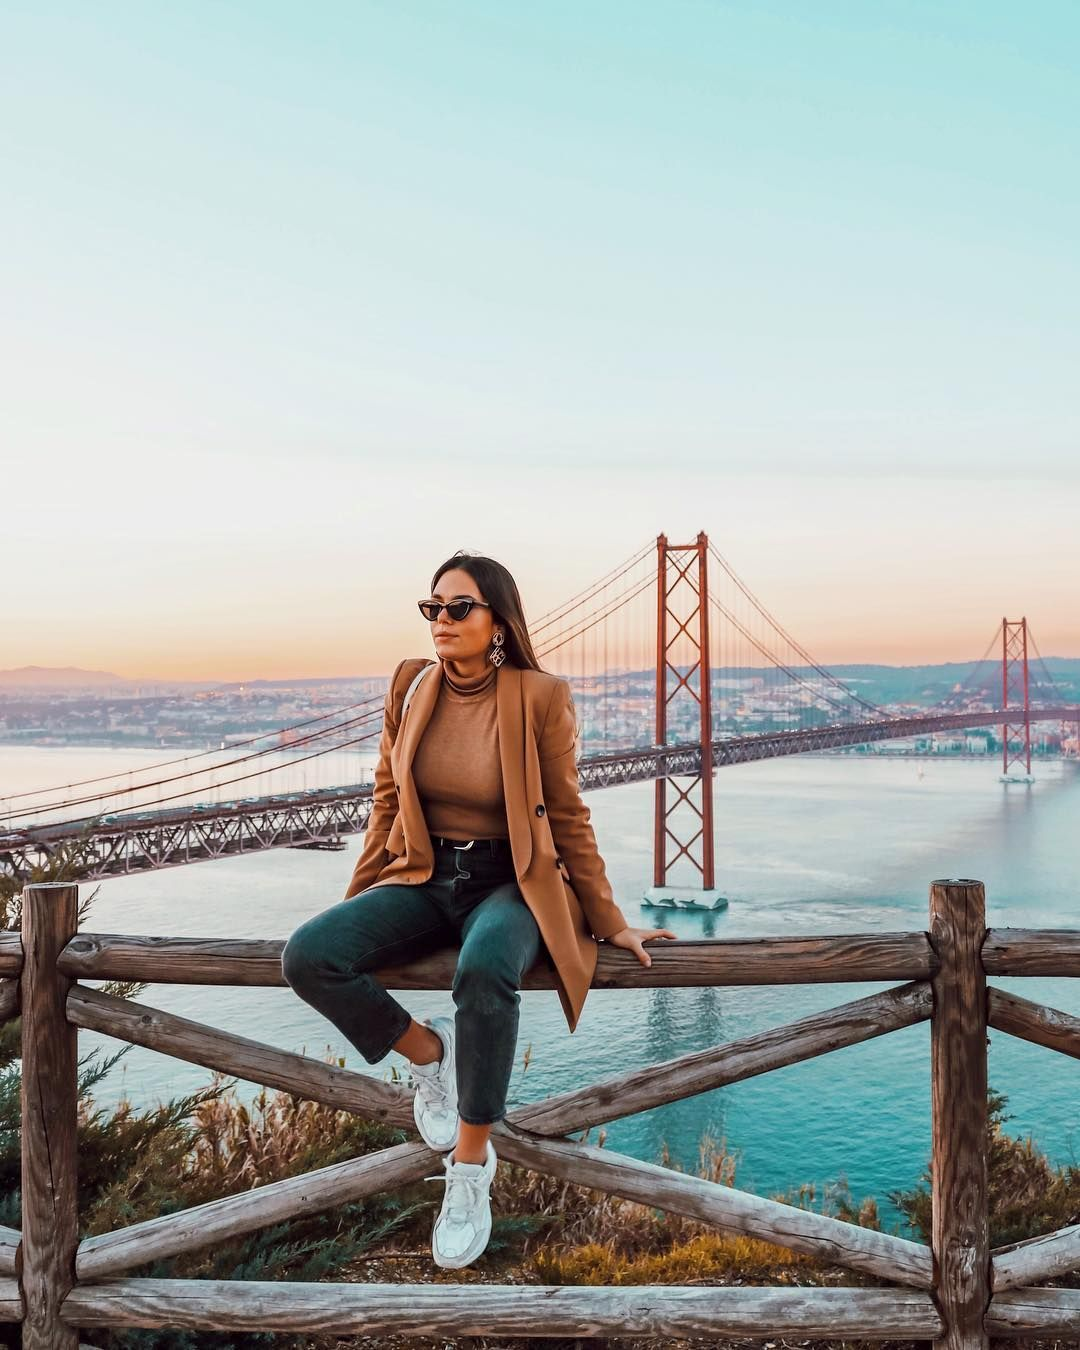 "Dᴇʙᴏʀᴀ Mᴏɴᴛᴇɪʀᴏ on Instagram: ""Whenever you feel like giving up, just think of the view from the top ✨ #photooftheday #ootd #lisbon #view #love #girl #city"" #bestplacesinportugal"